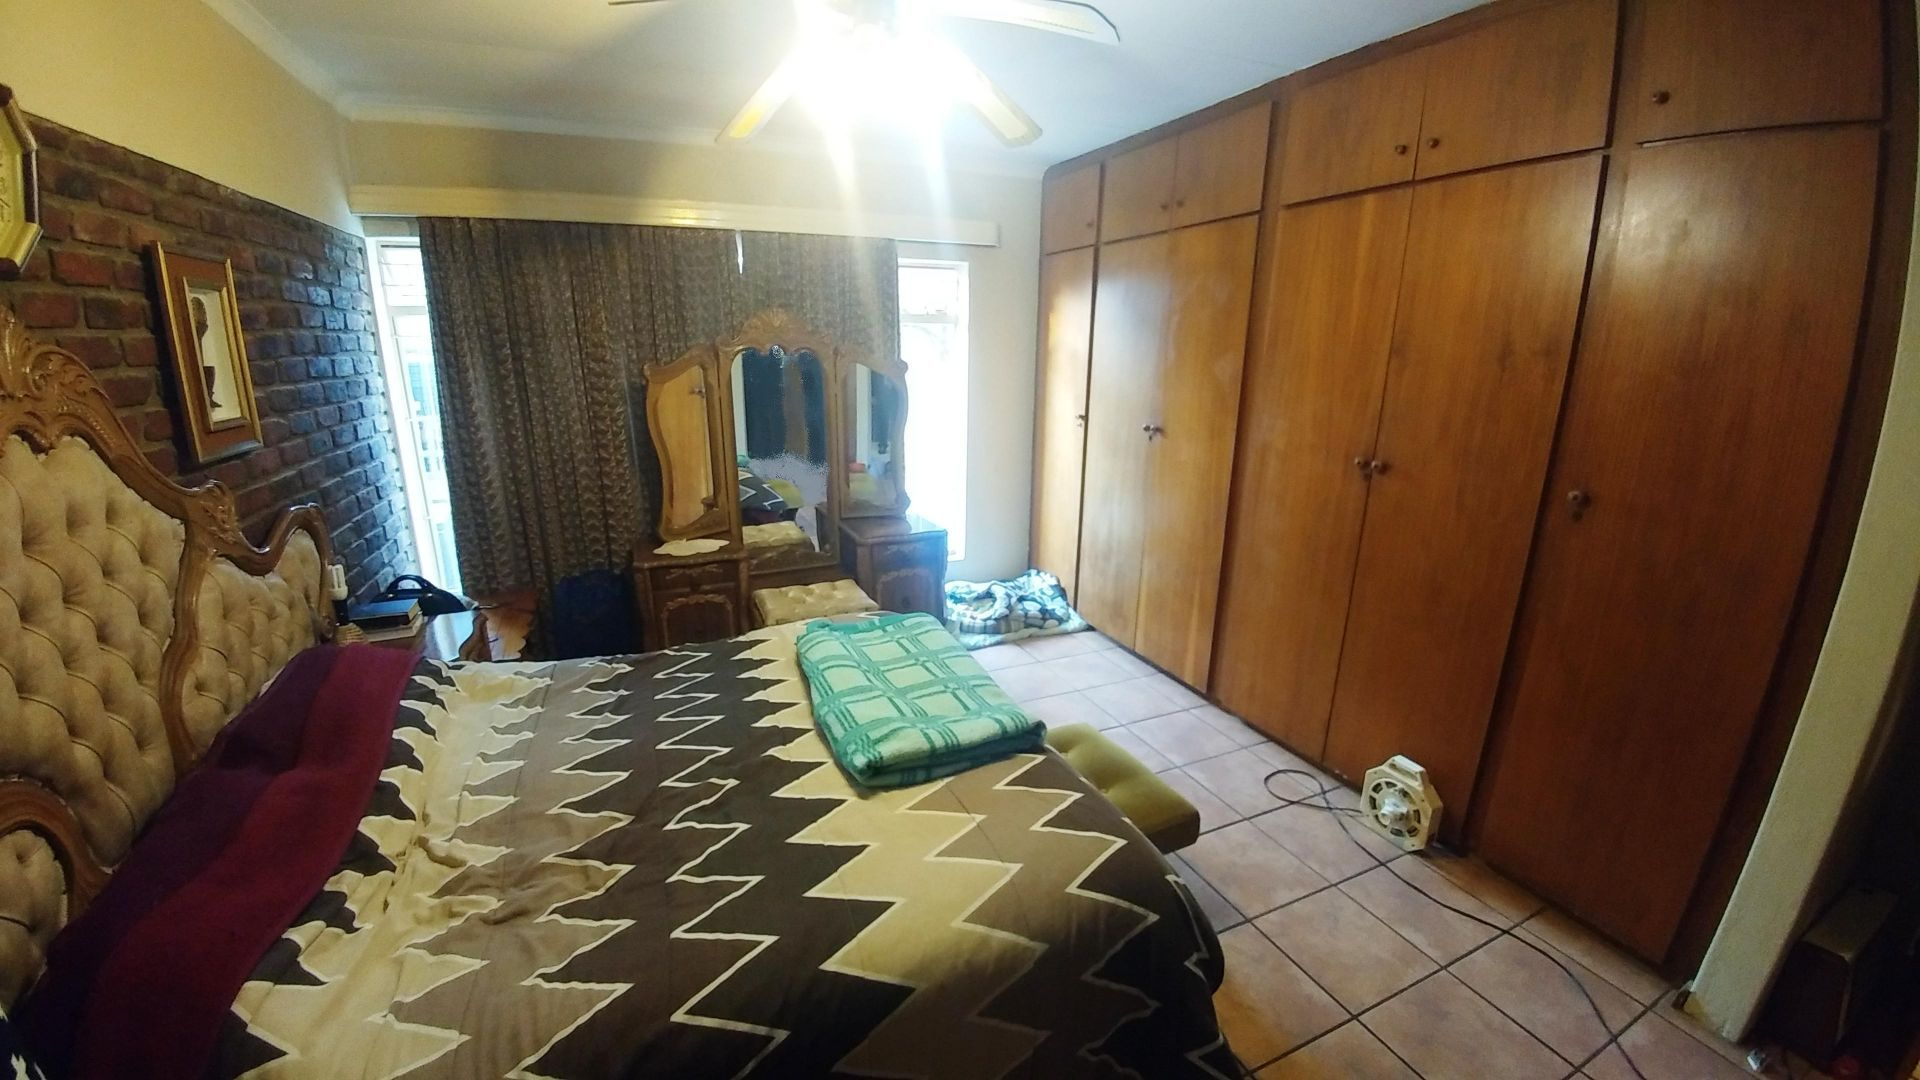 Potchefstroom Central property for sale. Ref No: 13508234. Picture no 15